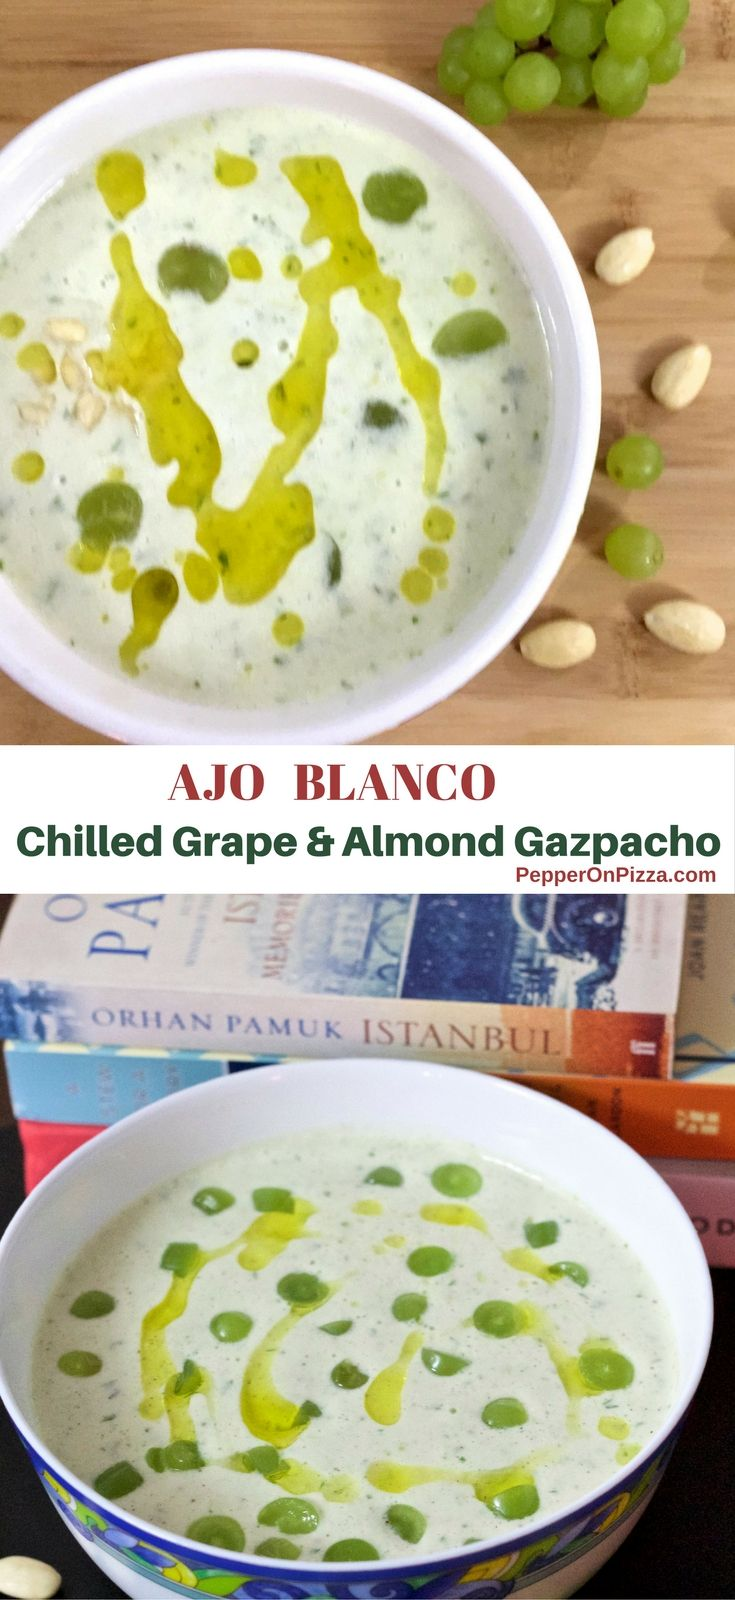 White Grape and Almond Gazpacho Recipe: A chilled No Cook traditional Ajo Blanco with green grapes, almonds, olive oil, vinegar, cucumber, bread